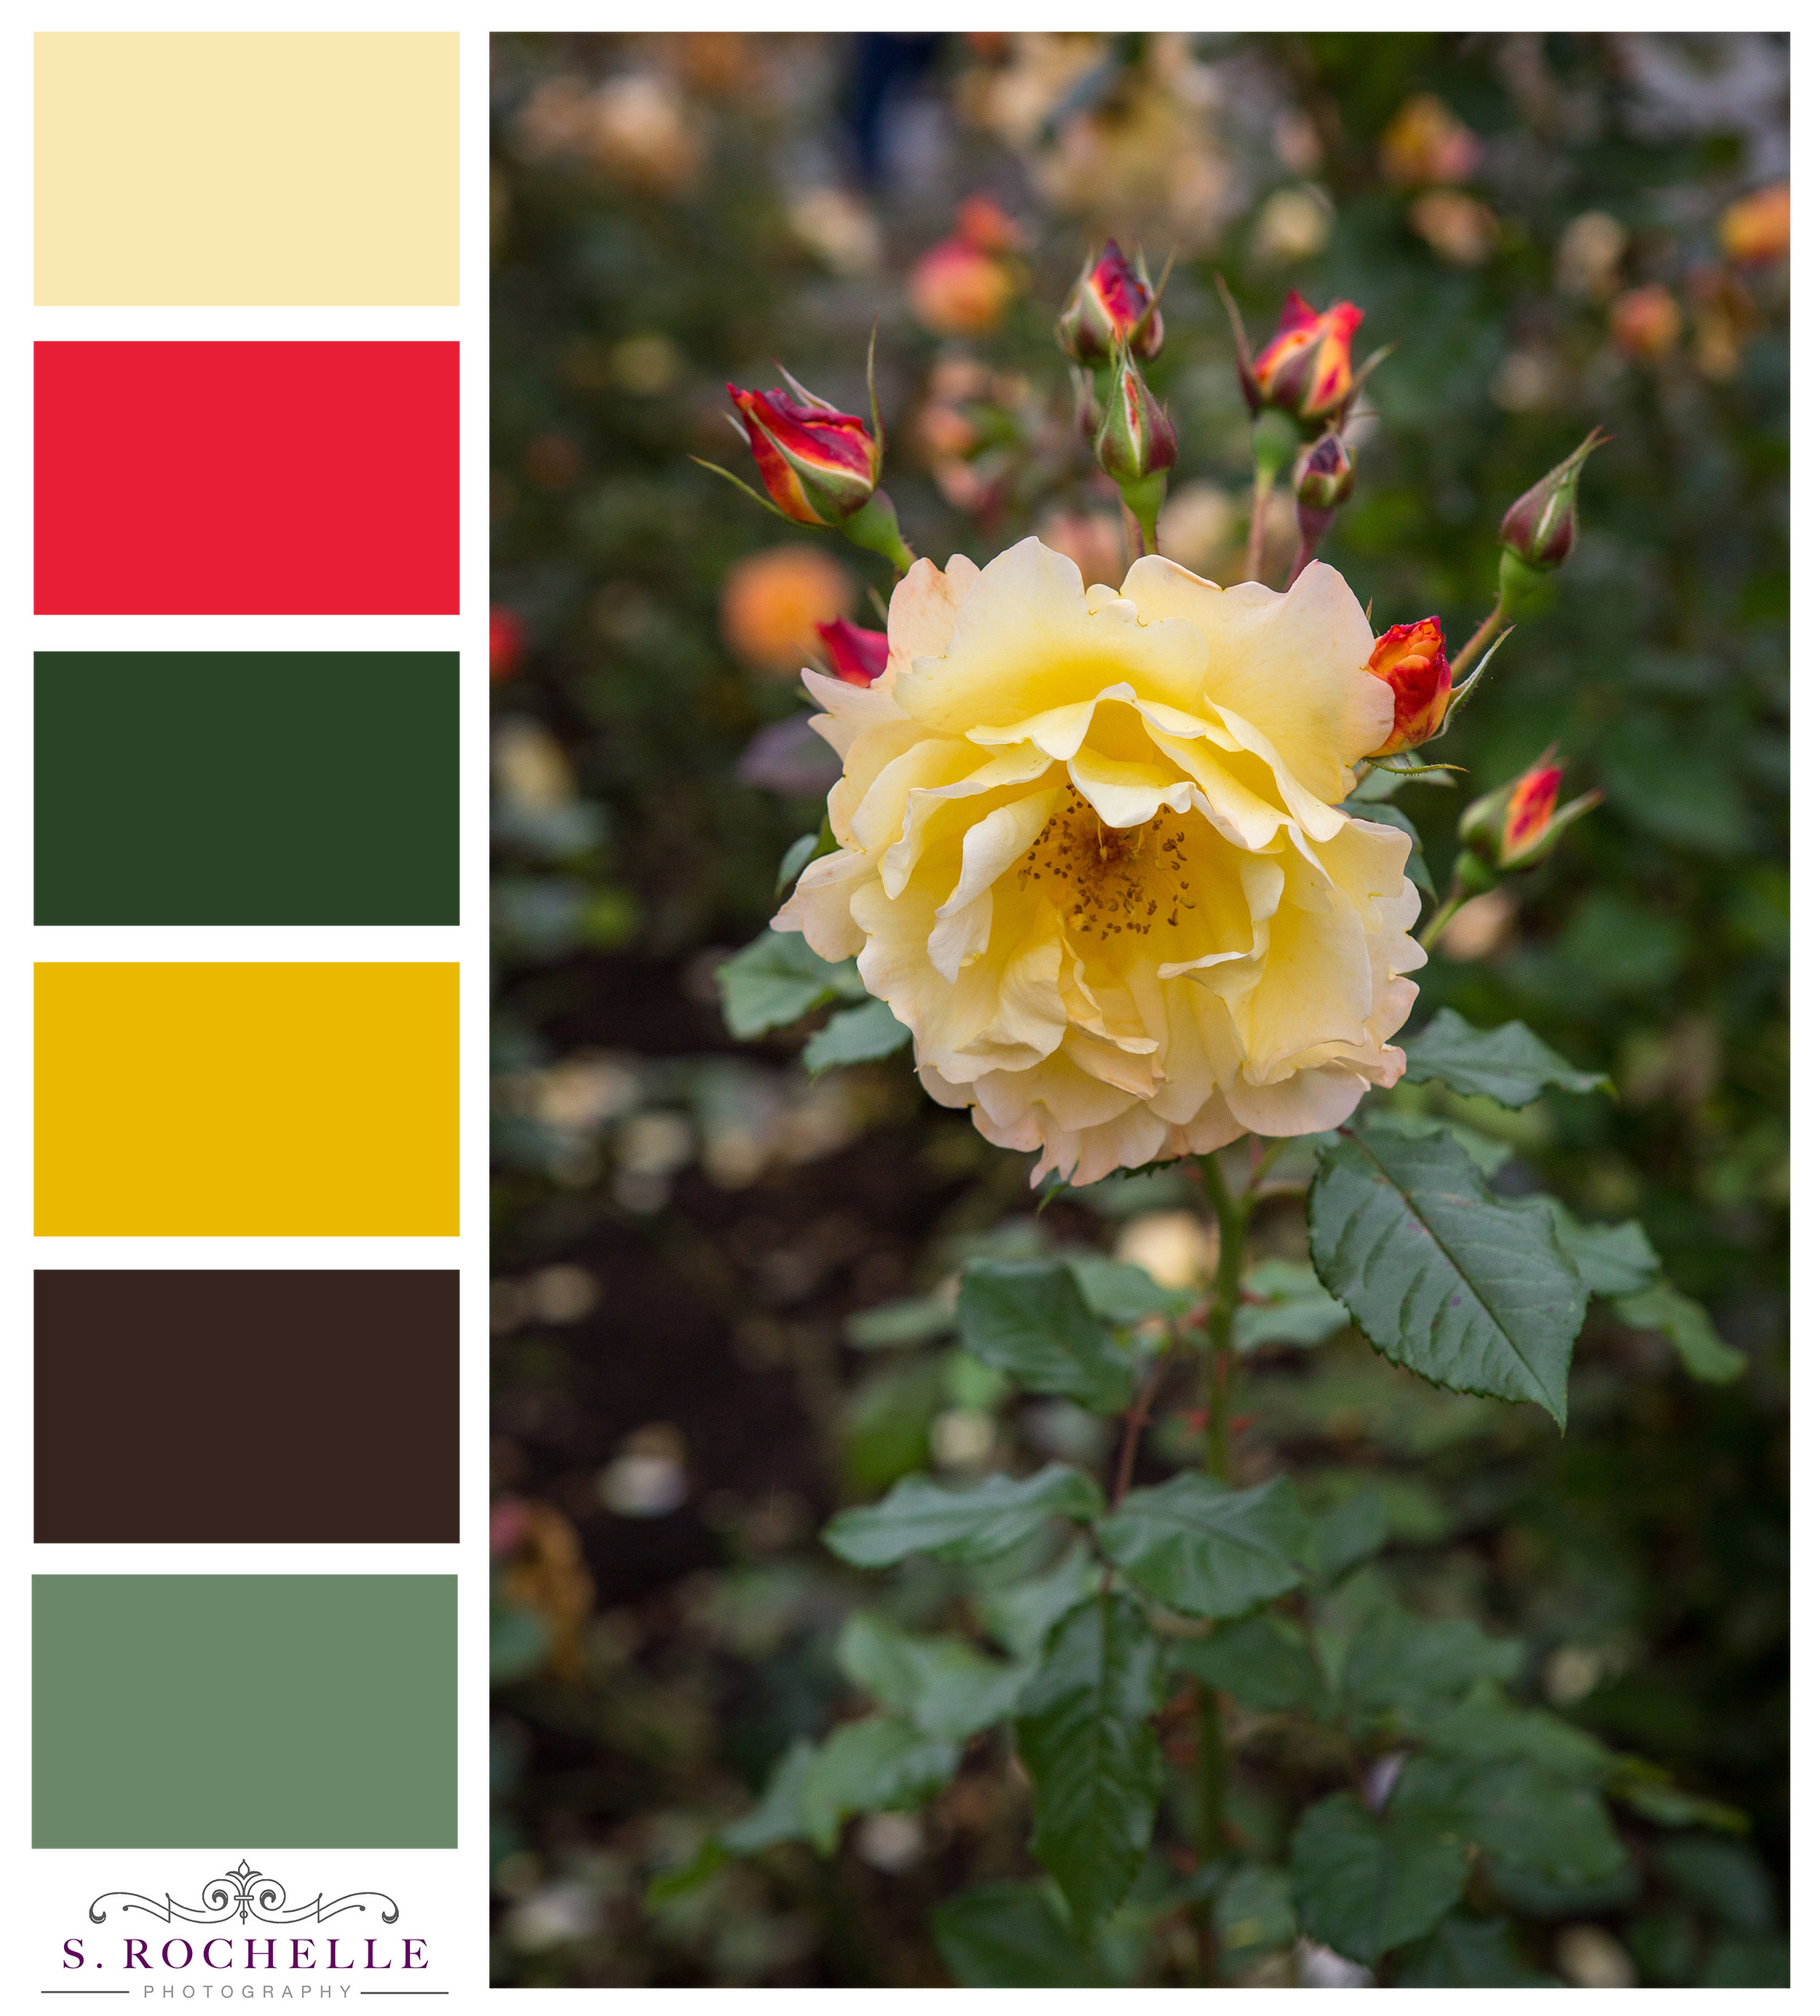 Yellow Rose_S_Rochelle_Photography_20170924_IMG_1766_ColorPalatte.jpg